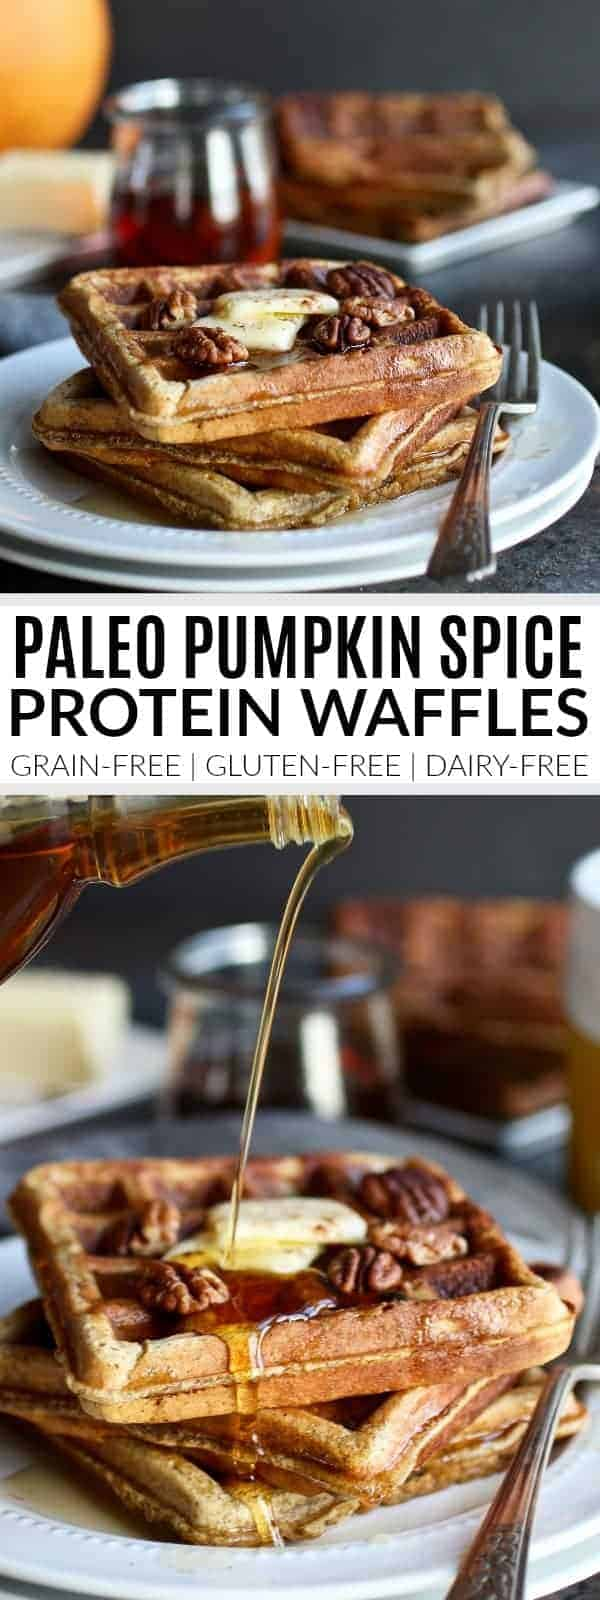 Paleo Pumpkin Spice Protein Waffles | grain-free waffle recipe | gluten-free waffle recipe | dairy-free waffle recipe | healthy waffle recipe | paleo waffle recipe | pumokin waffle recipe | paleo breakfast recipes | gluten-free breakfast recipes | dairy-free breakfast recipes | healthy breakfast recipes || The Real Food Dietitians #paleo #glutenfree #healthywaffles #healthybreakfast